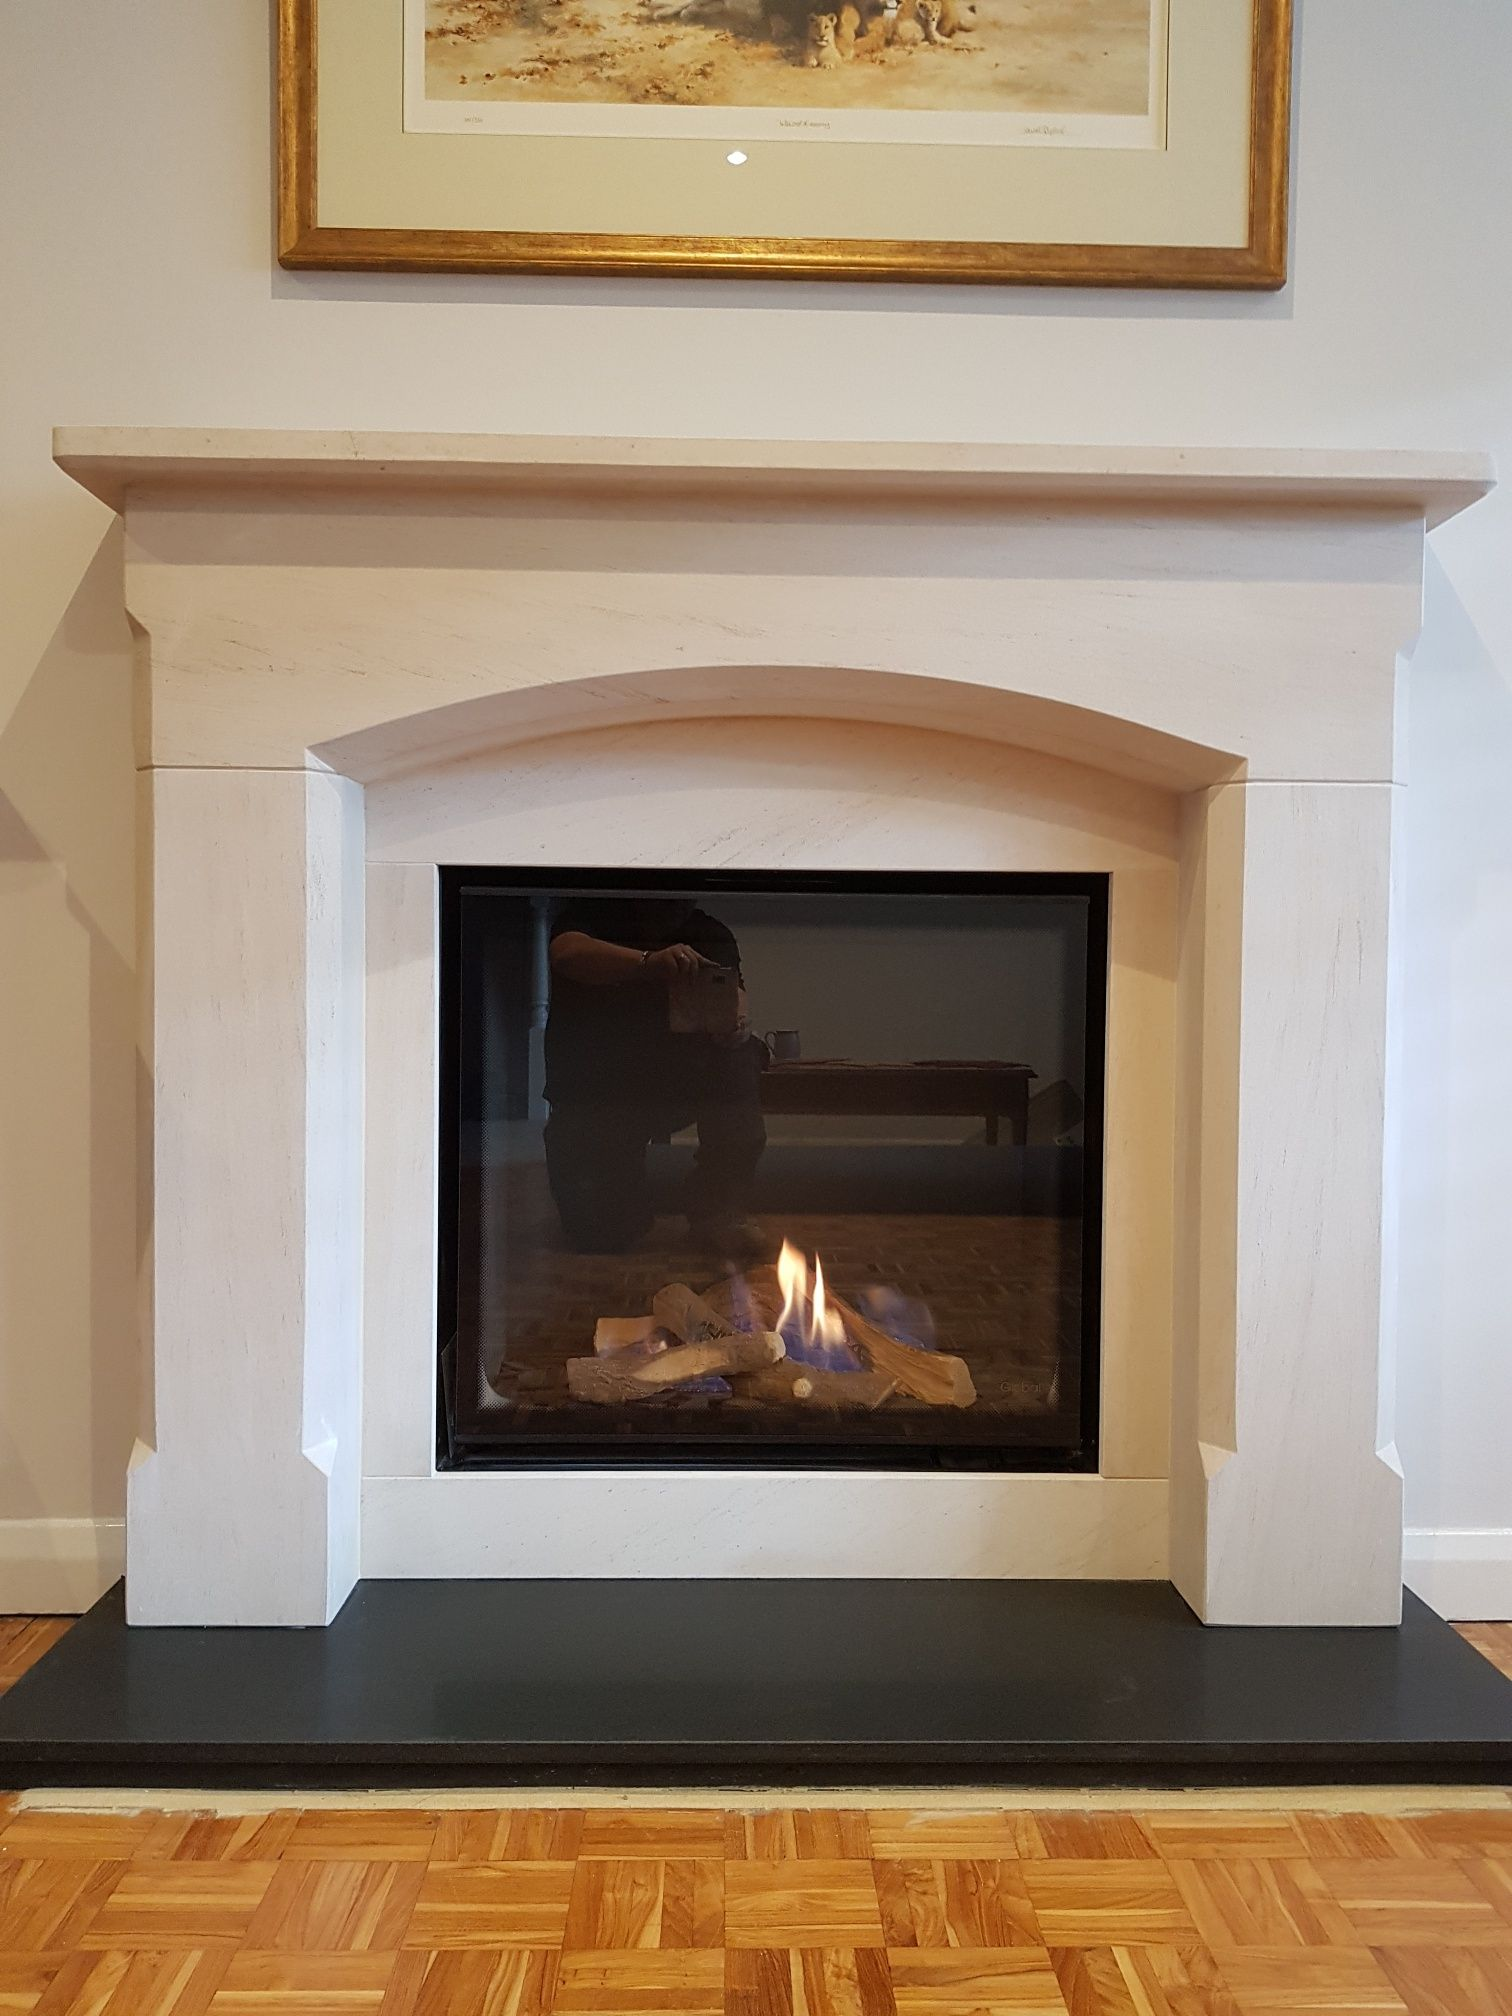 54 Bellingham Portugese Limestone Surround And Slips With A Dru Global 70xt Gas Fire And Honed Granite Hearth Wood Burning Stove Pantry Design Granite Hearth